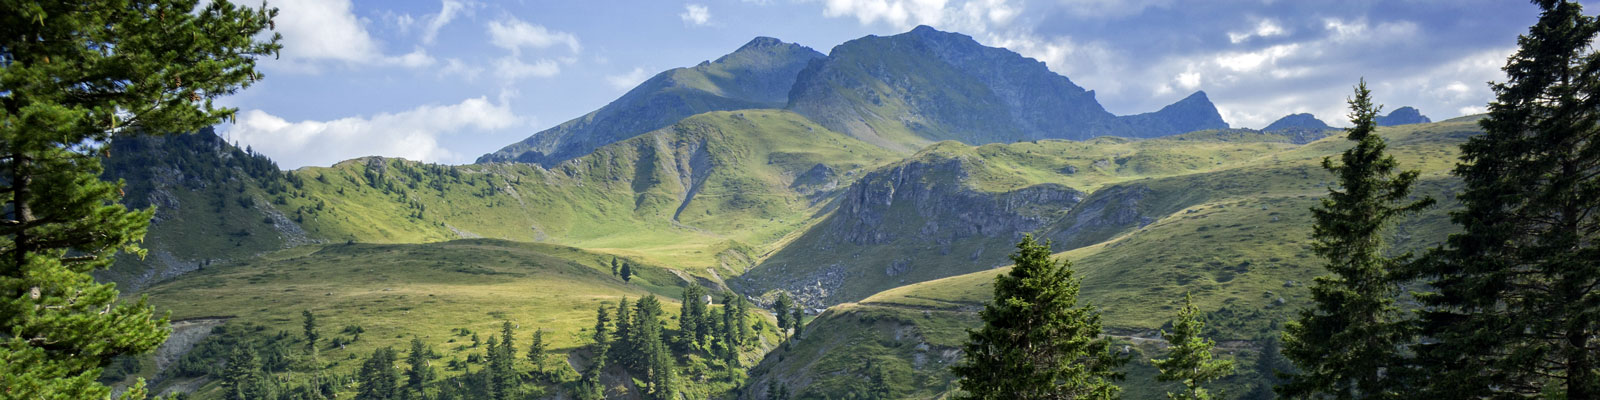 Kosovo-Vegan-Travel-Guide-1600x